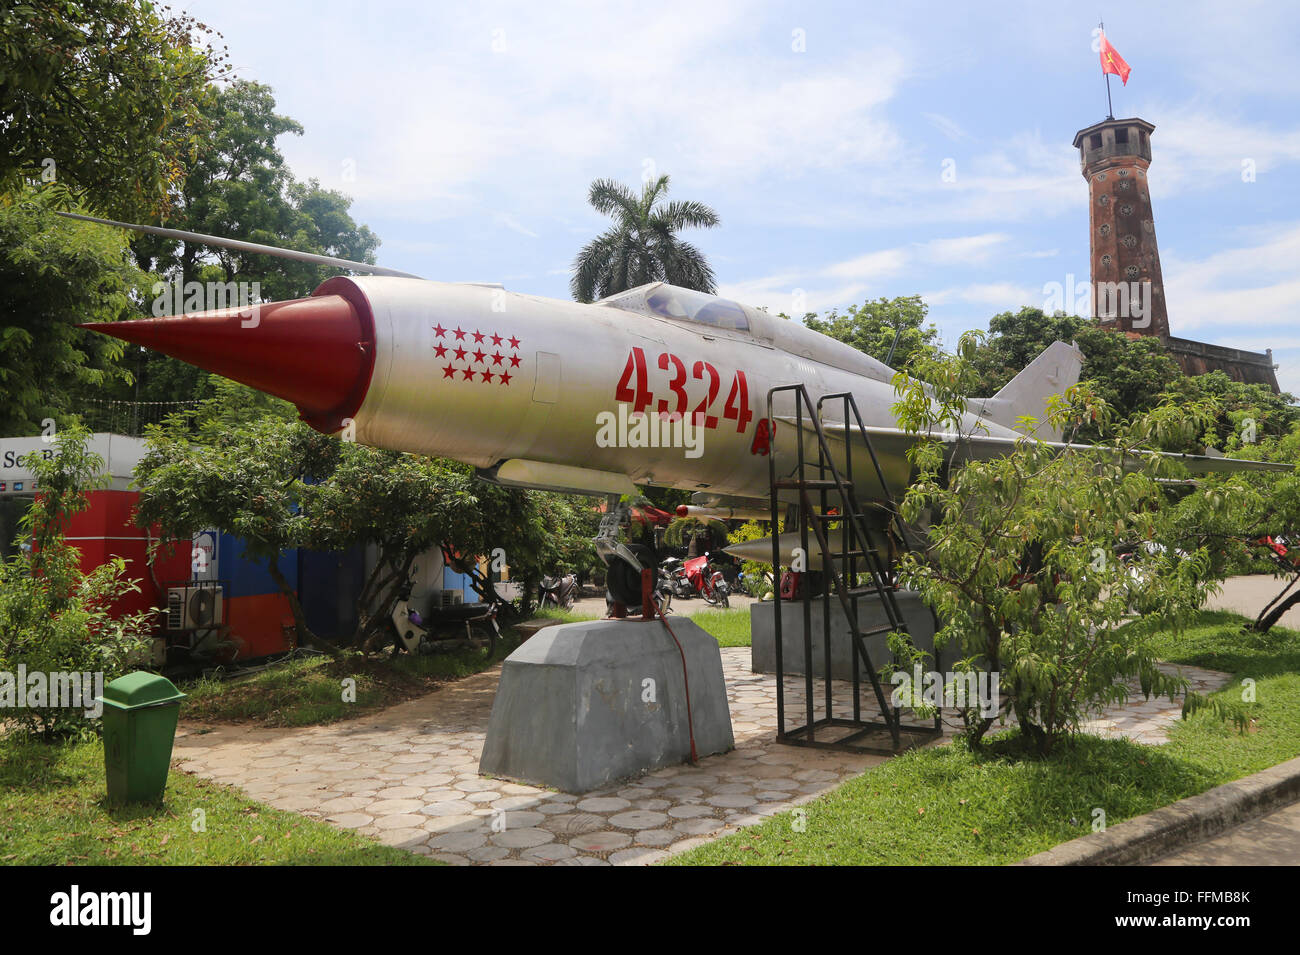 [the-mig-21-n-4324-of-the-vietnam-peoples-air-force-responsible-for-FFMB8K]